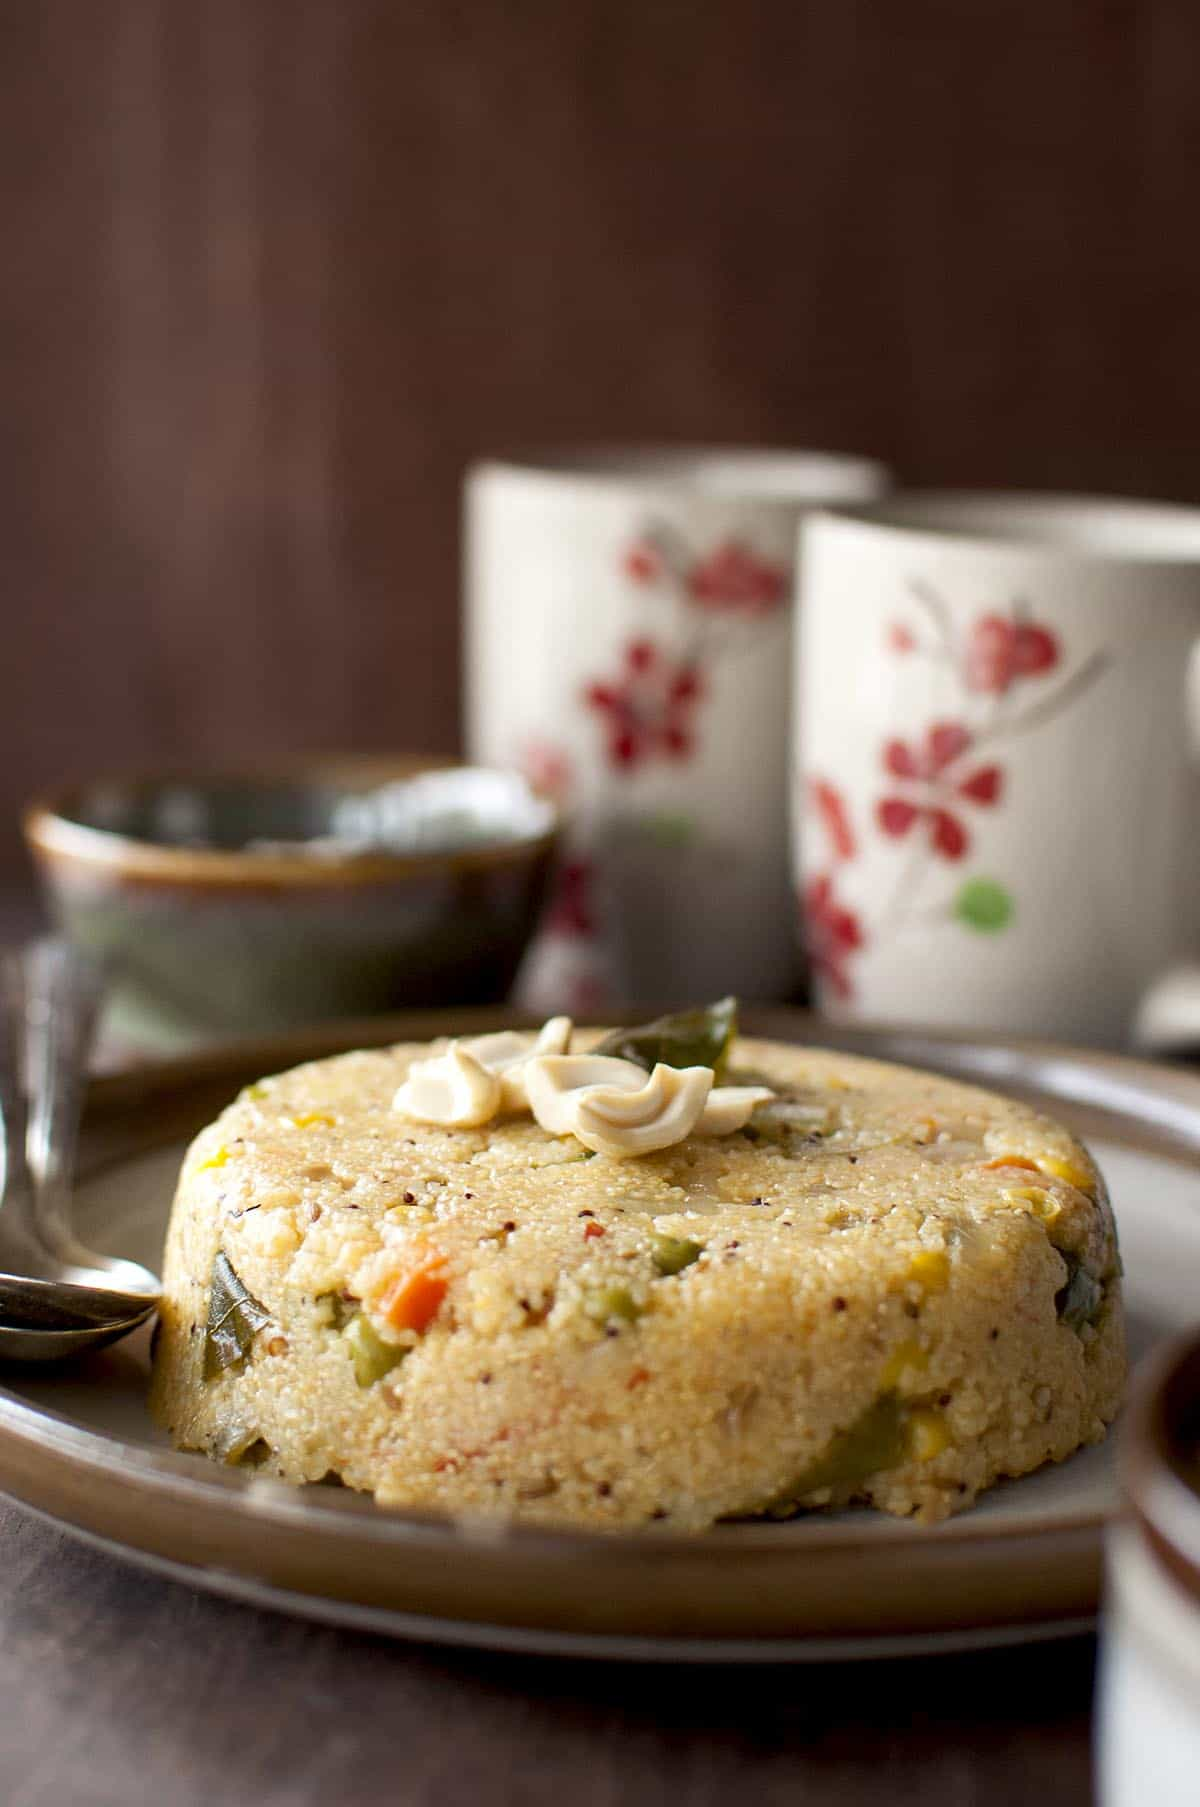 brown plate with jonna rava upma topped with cashews and curry leaves and 2 coffee mugs in the background